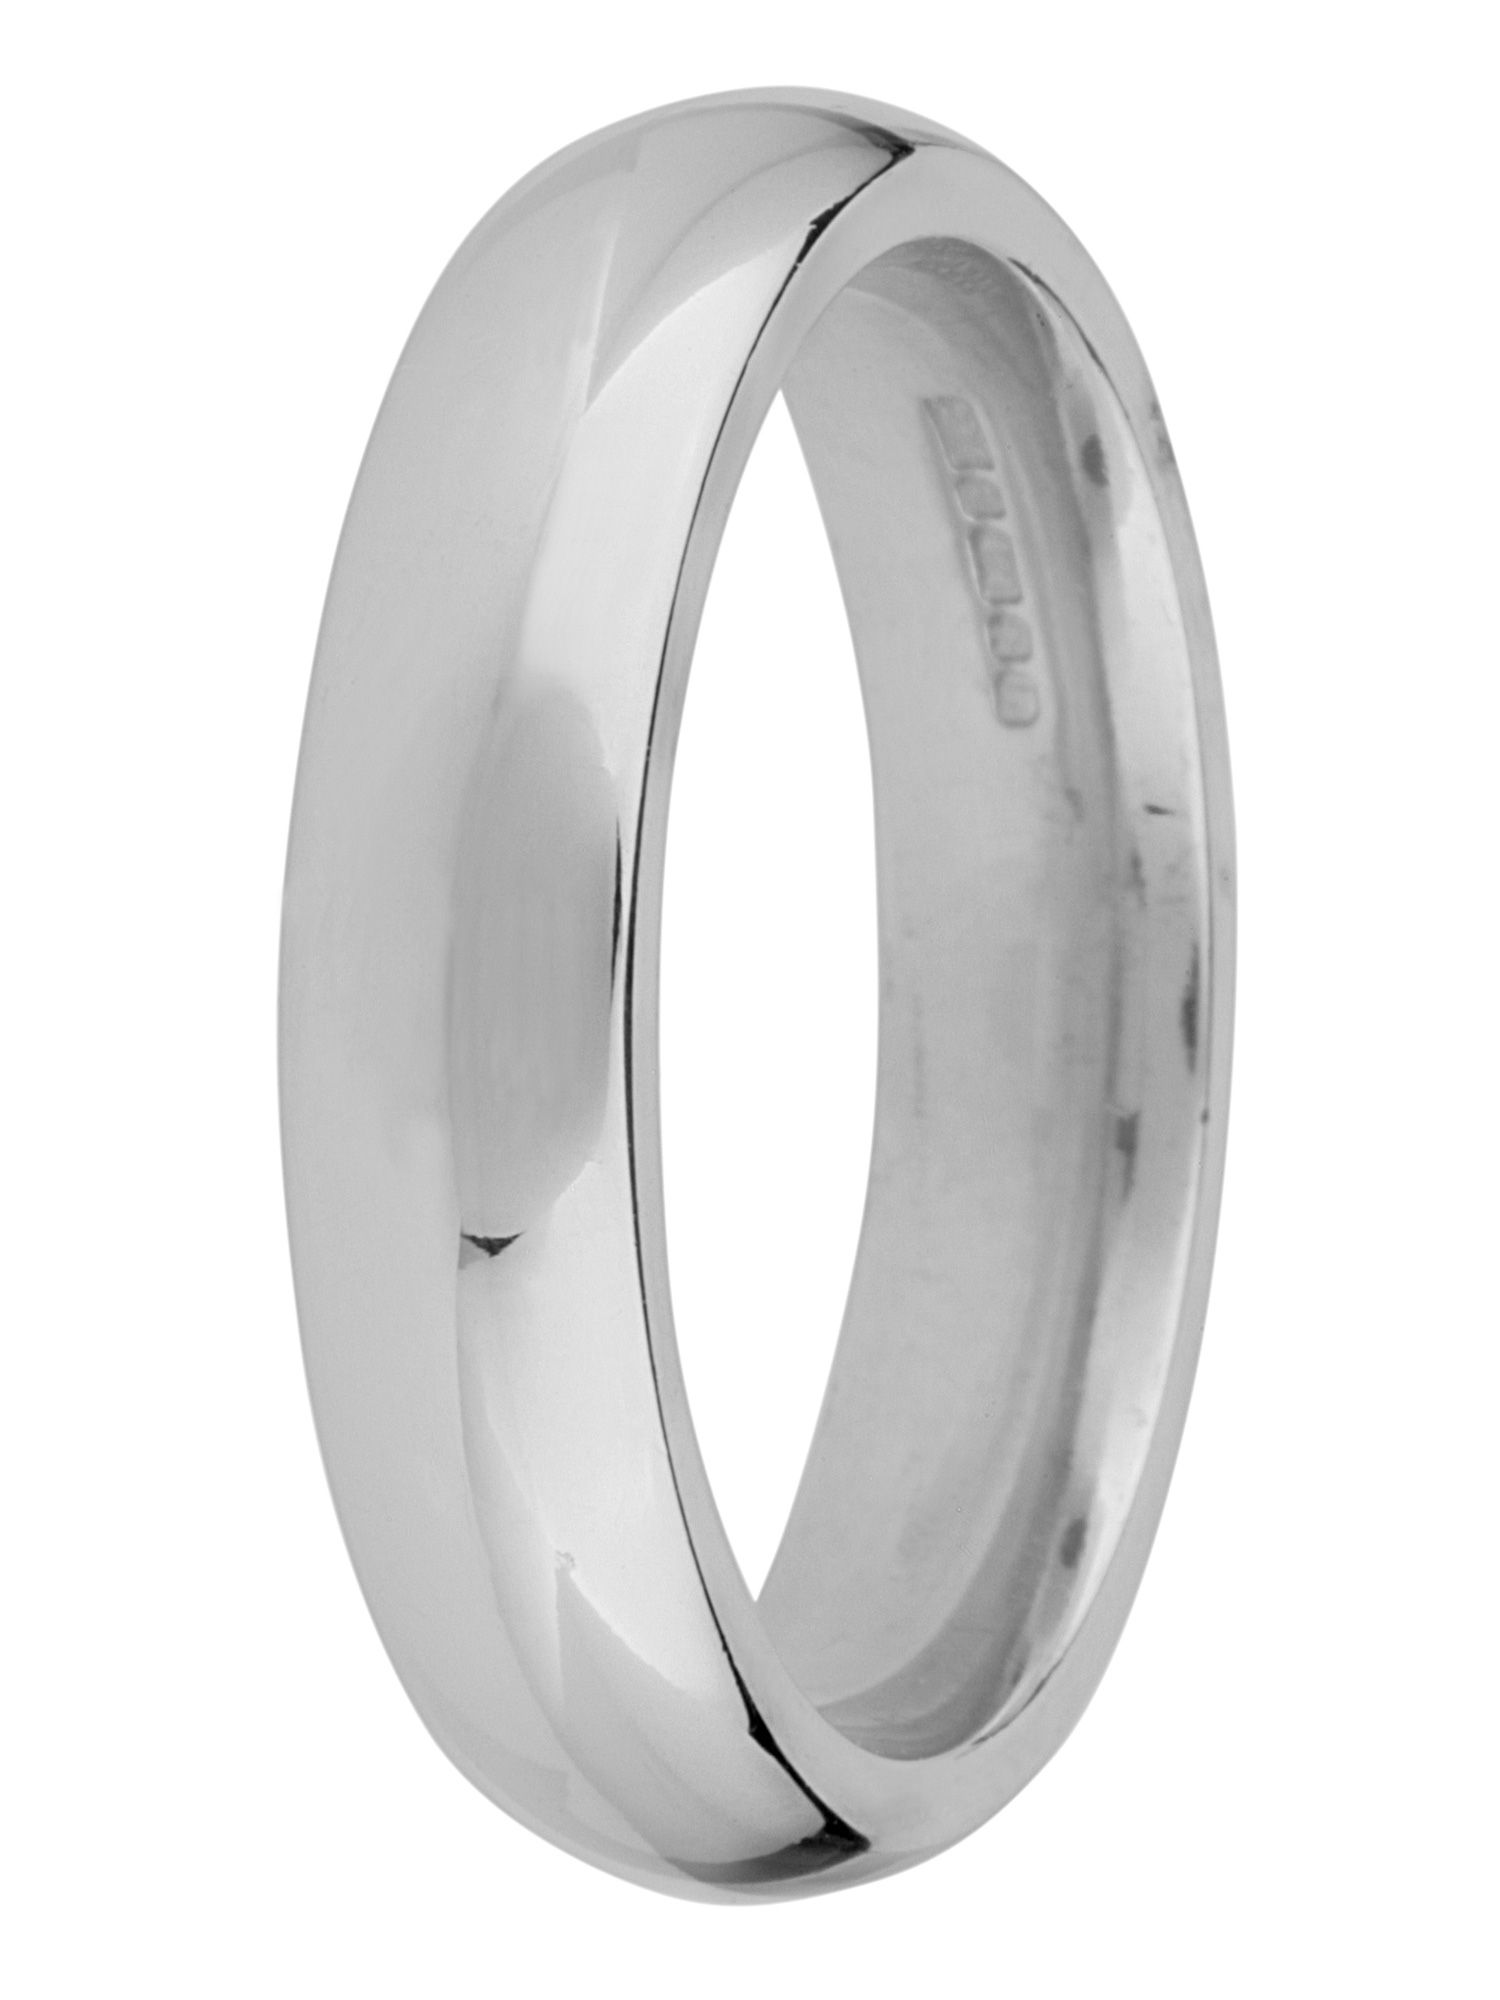 Grooms 18ct gold 5mm court wedding ring - White Gold